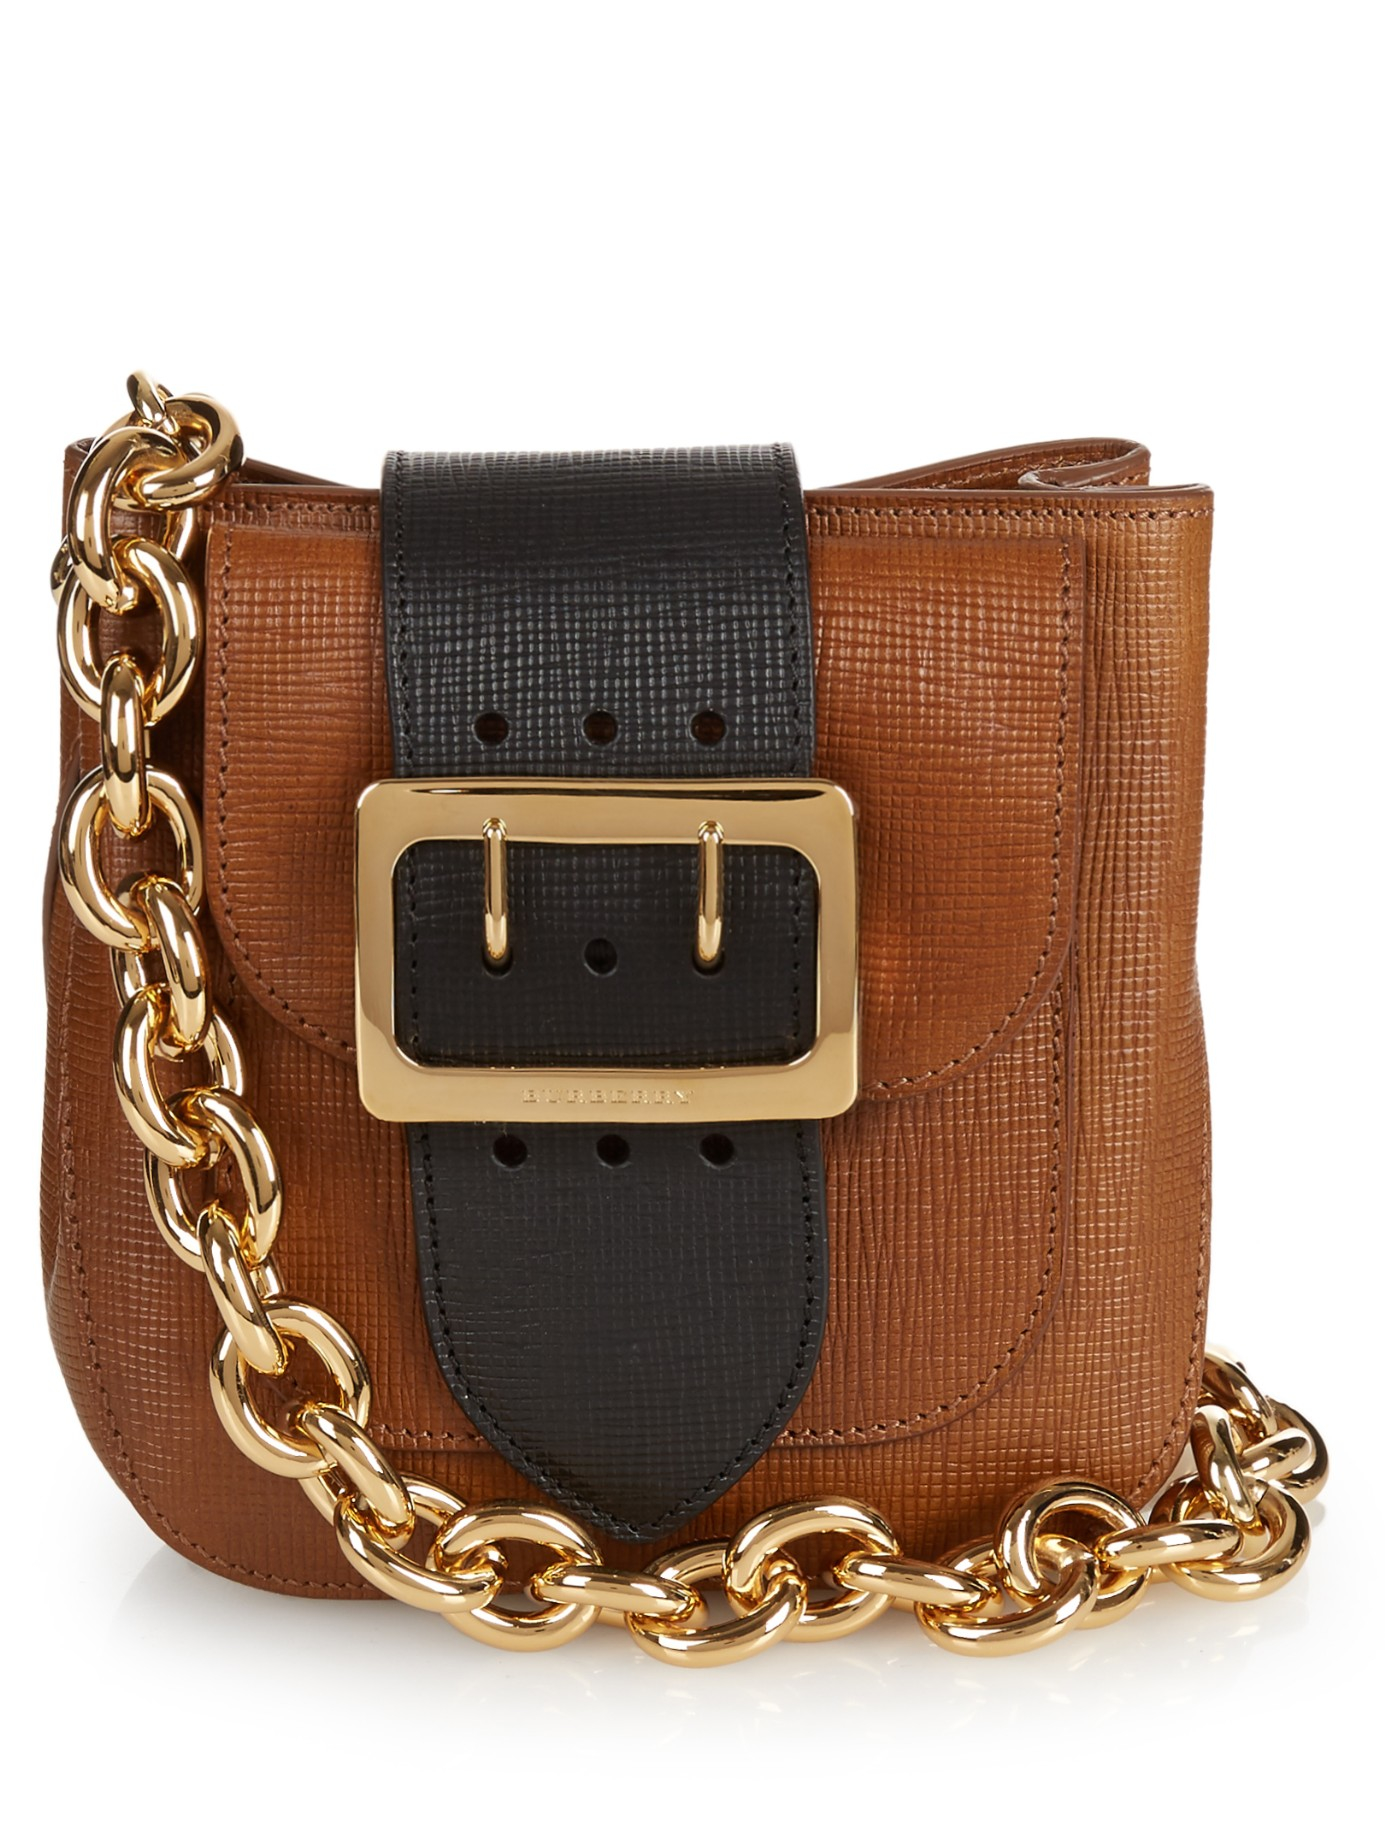 Burberry Prorsum The Belt Leather Shoulder Bag In Brown Lyst